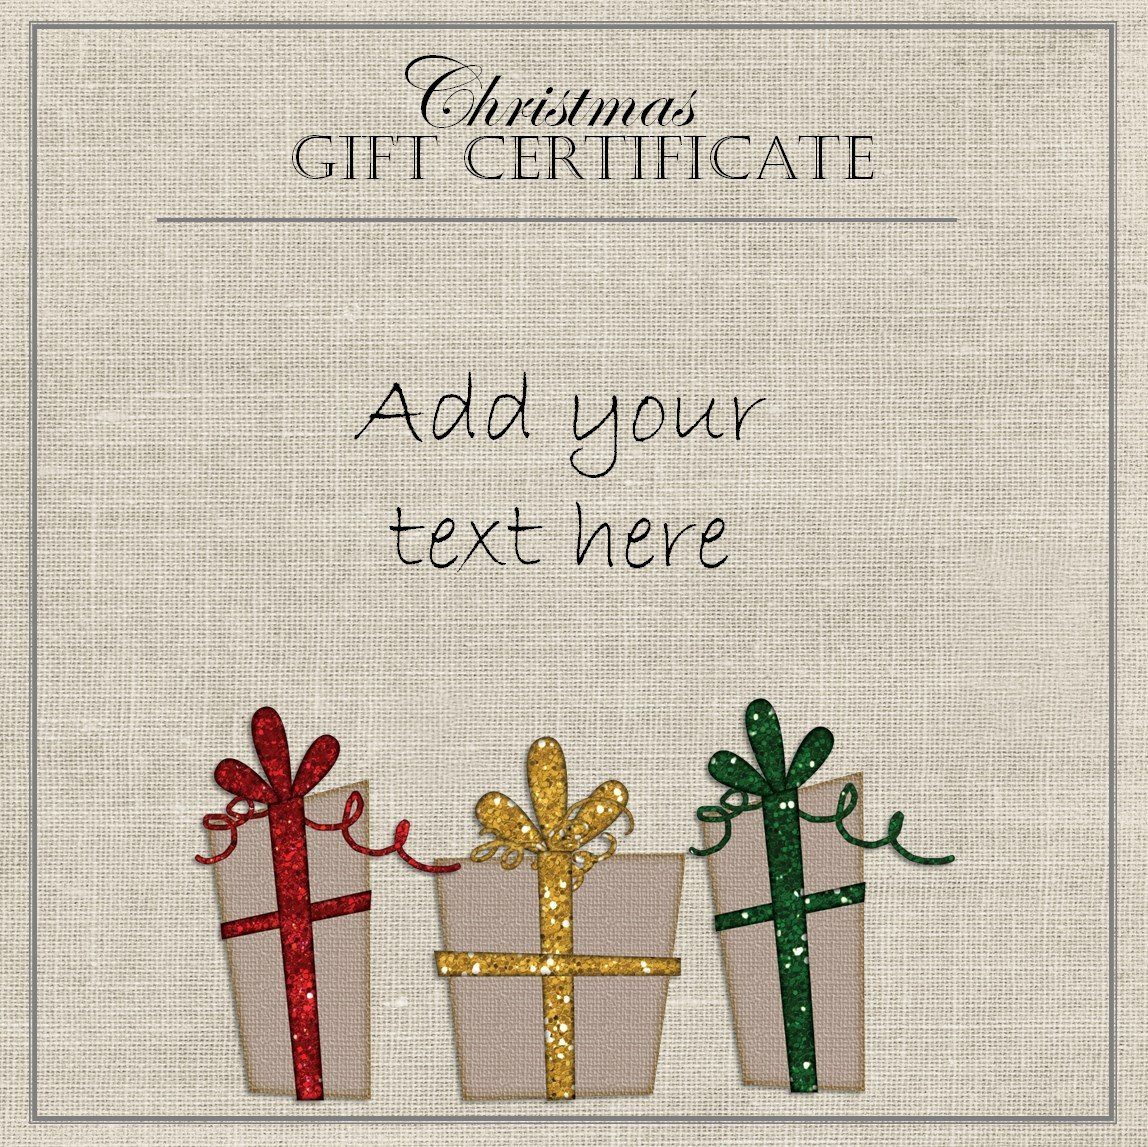 Editable And Printable Silver Swirls Gift Certificate Template Free - Free Printable Christmas Gift Voucher Templates